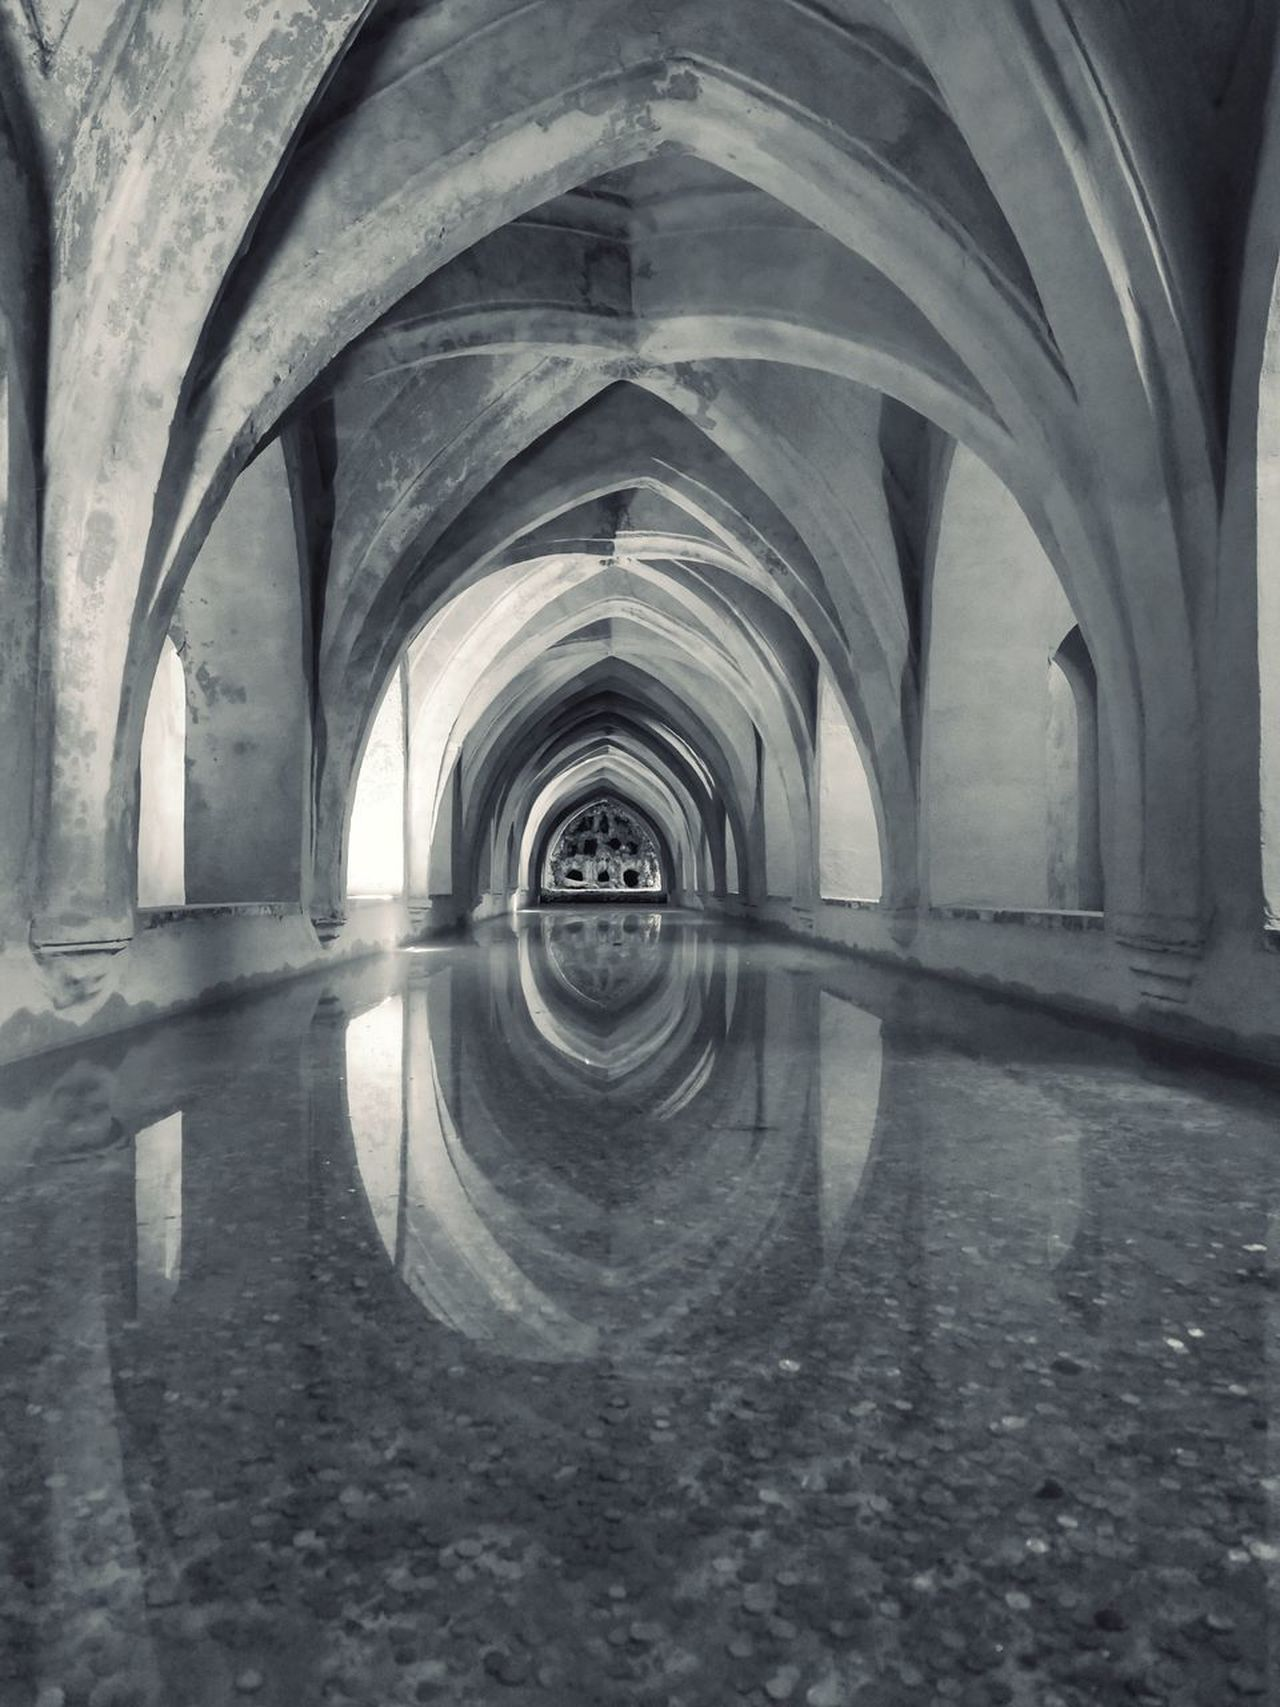 Water Reservoir in Alcazar Real Sevilla Architecture Reflection Water Reflection Refection Reflection_collection Andalucía España SPAIN Cellar Vanishing Point Wishing Well The Architect - 2017 EyeEm Awards BYOPaper! Live For The Story